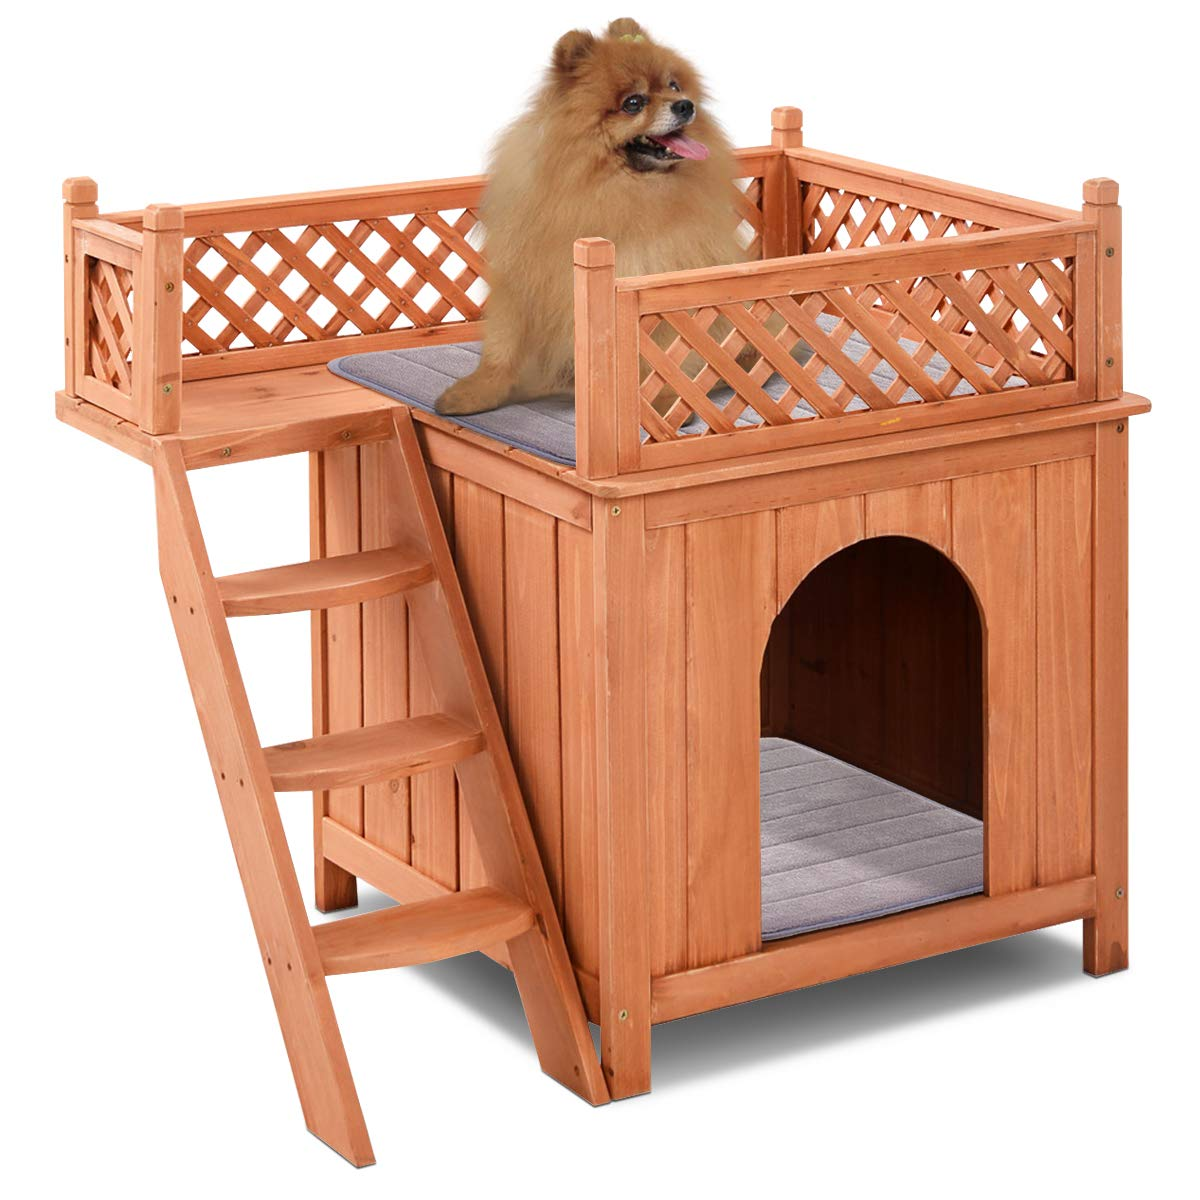 Giantex Pet Dog House Wooden Puppy Dog House Outdoor/Indoor Wood Dog Room Shelter with Stairs, Raised Roof and Balcony Bed